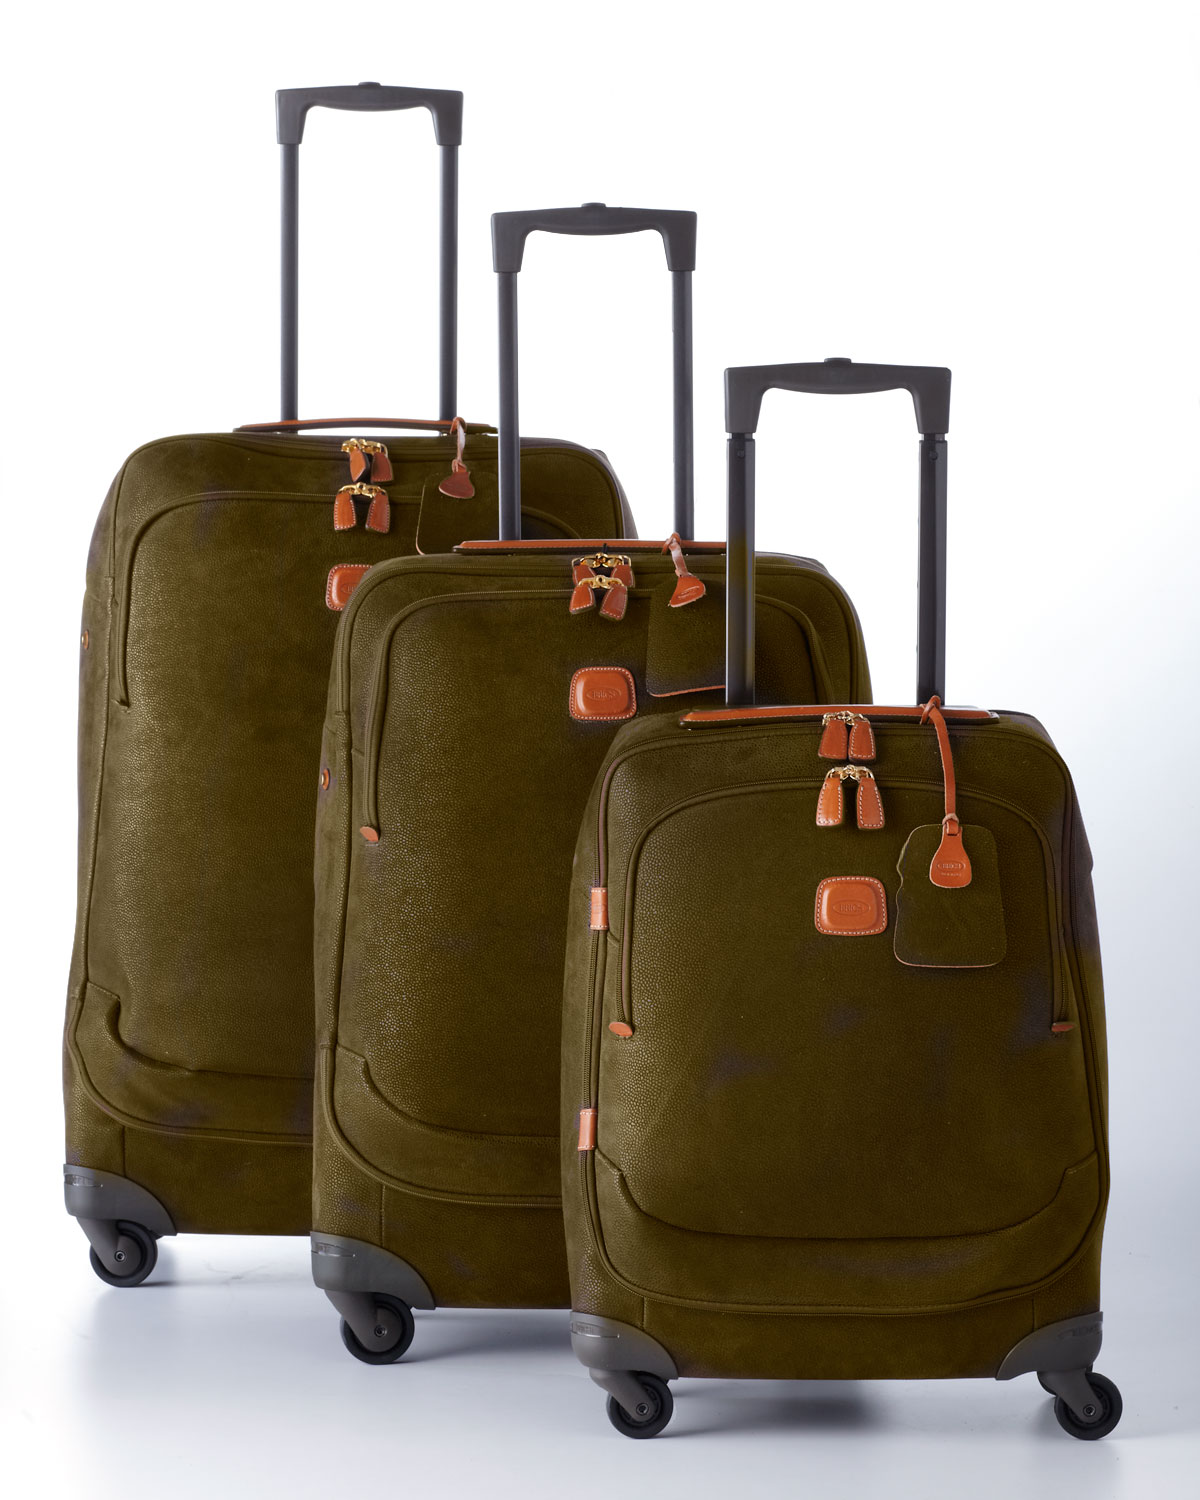 "Olive Life 28"" Rolling Duffel Luggage"